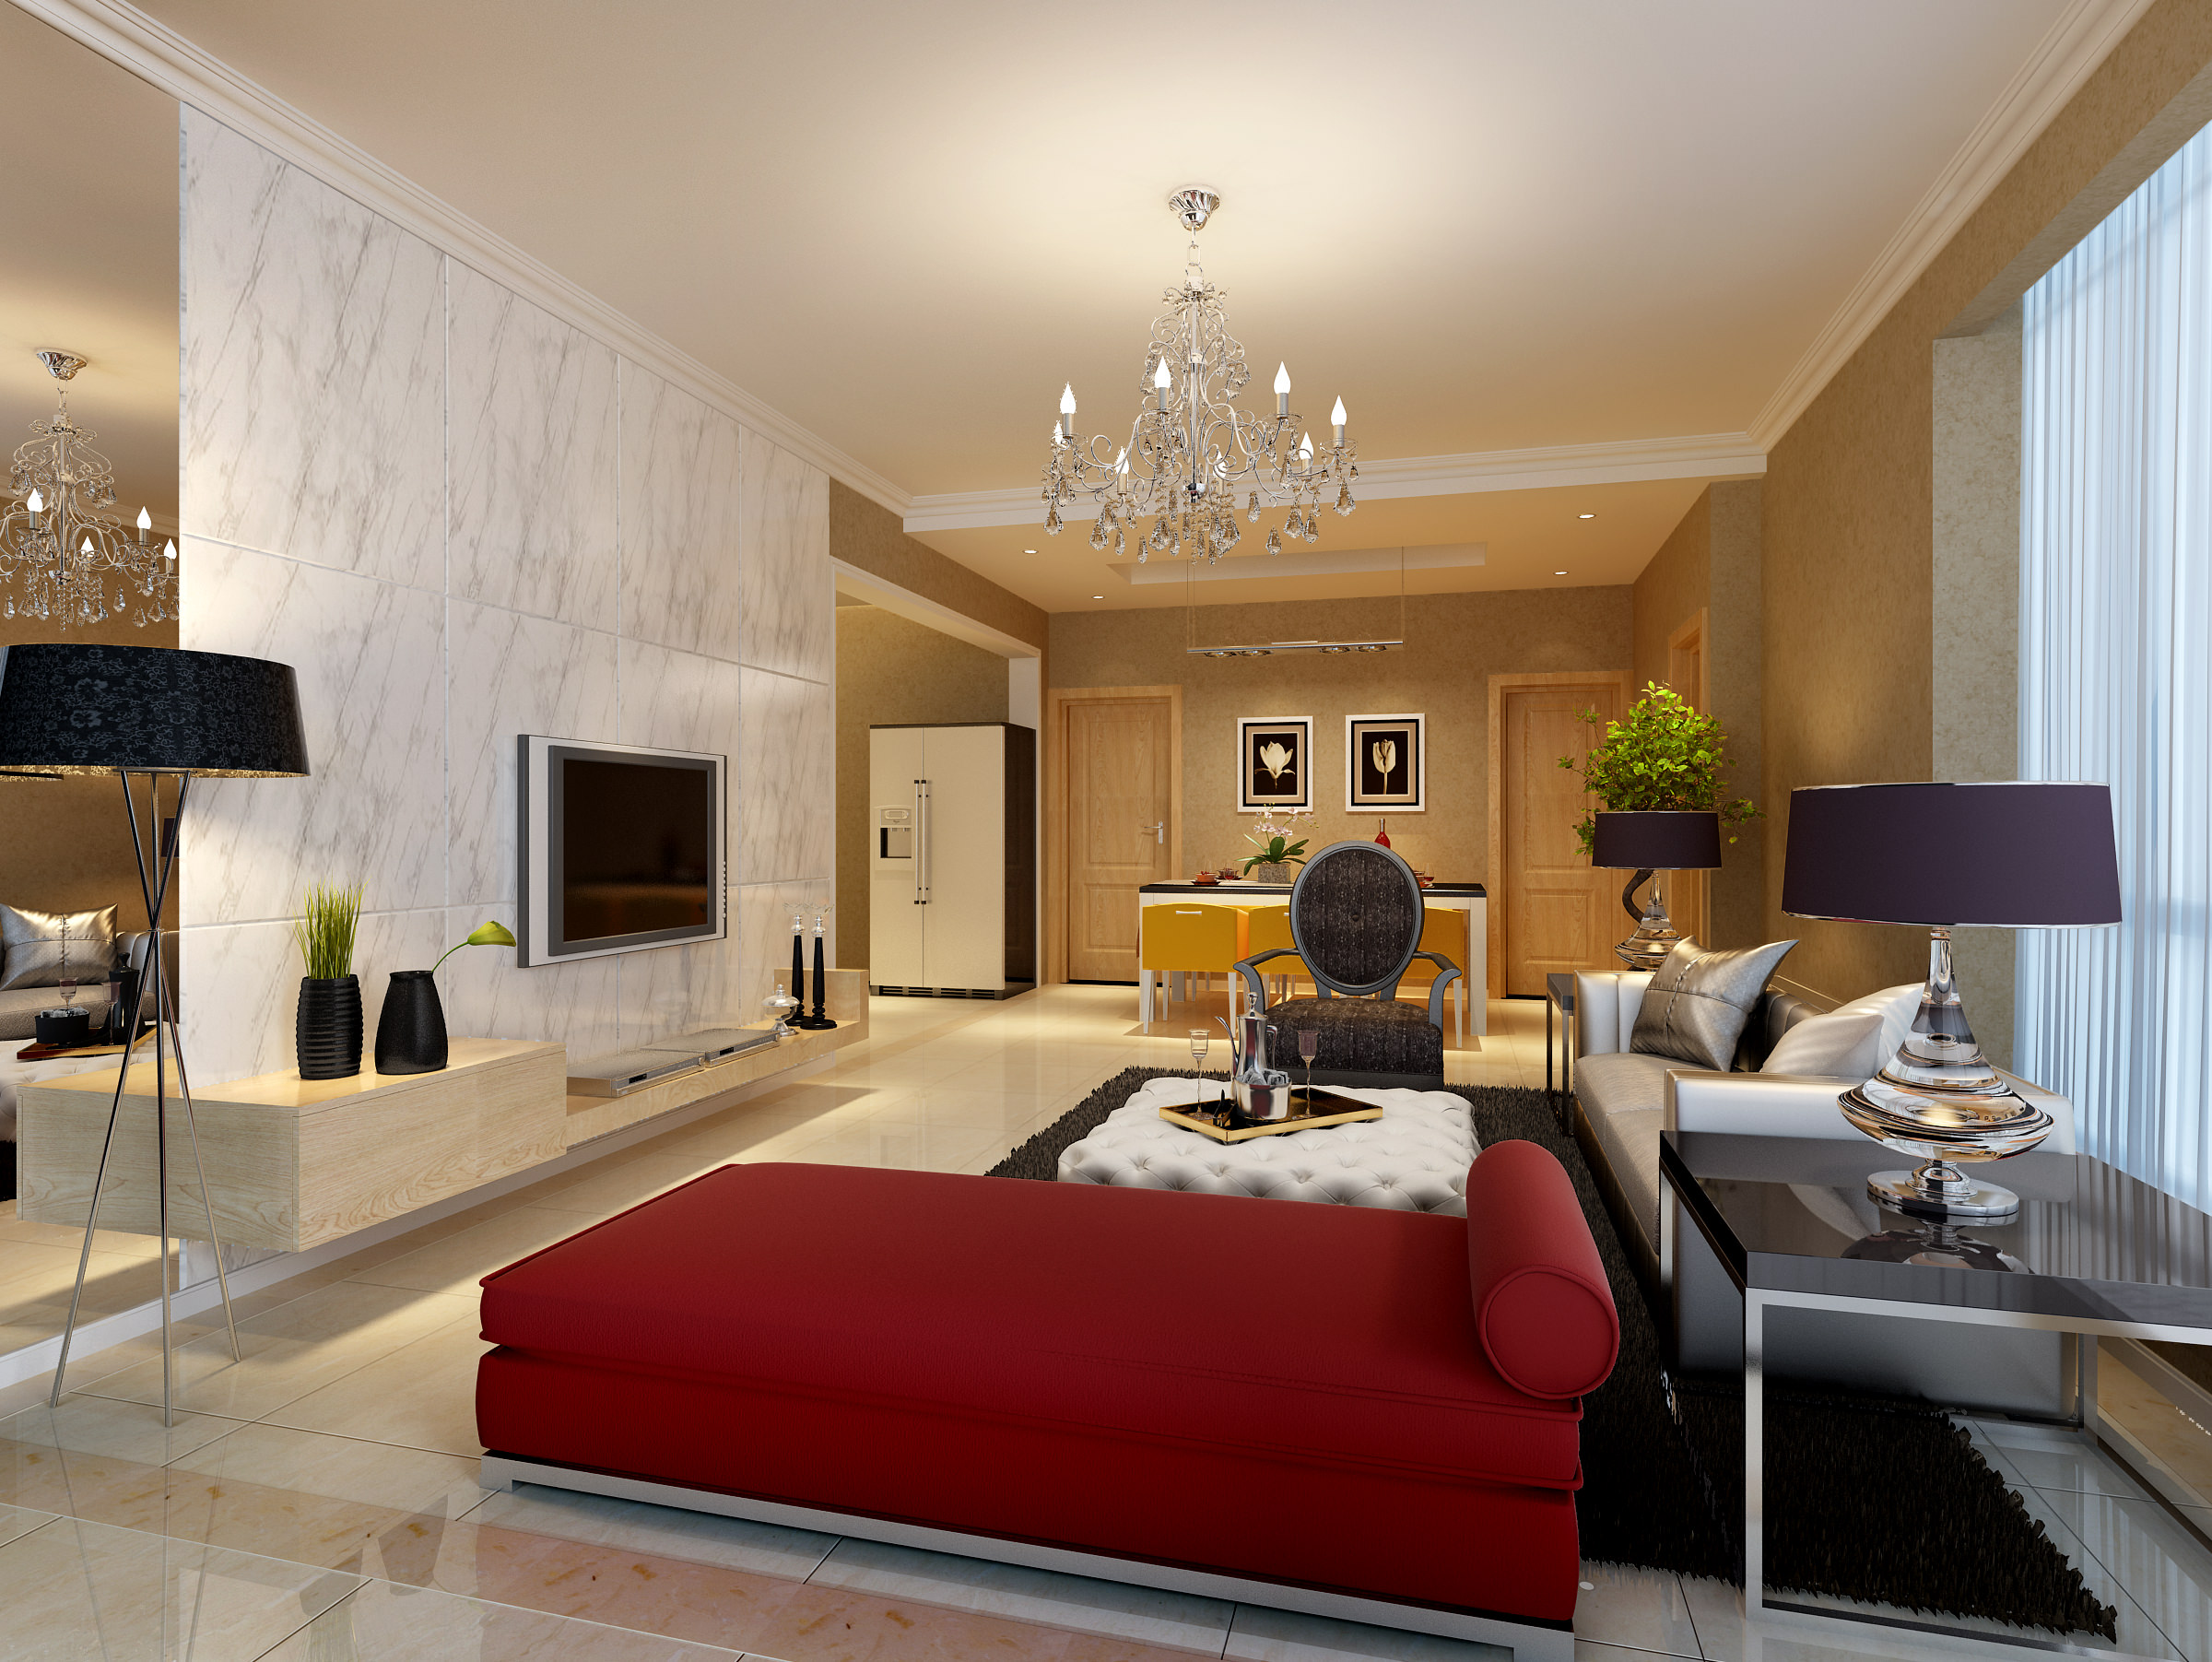 Living Room And Bedroom Collection 3D model   CGTrader